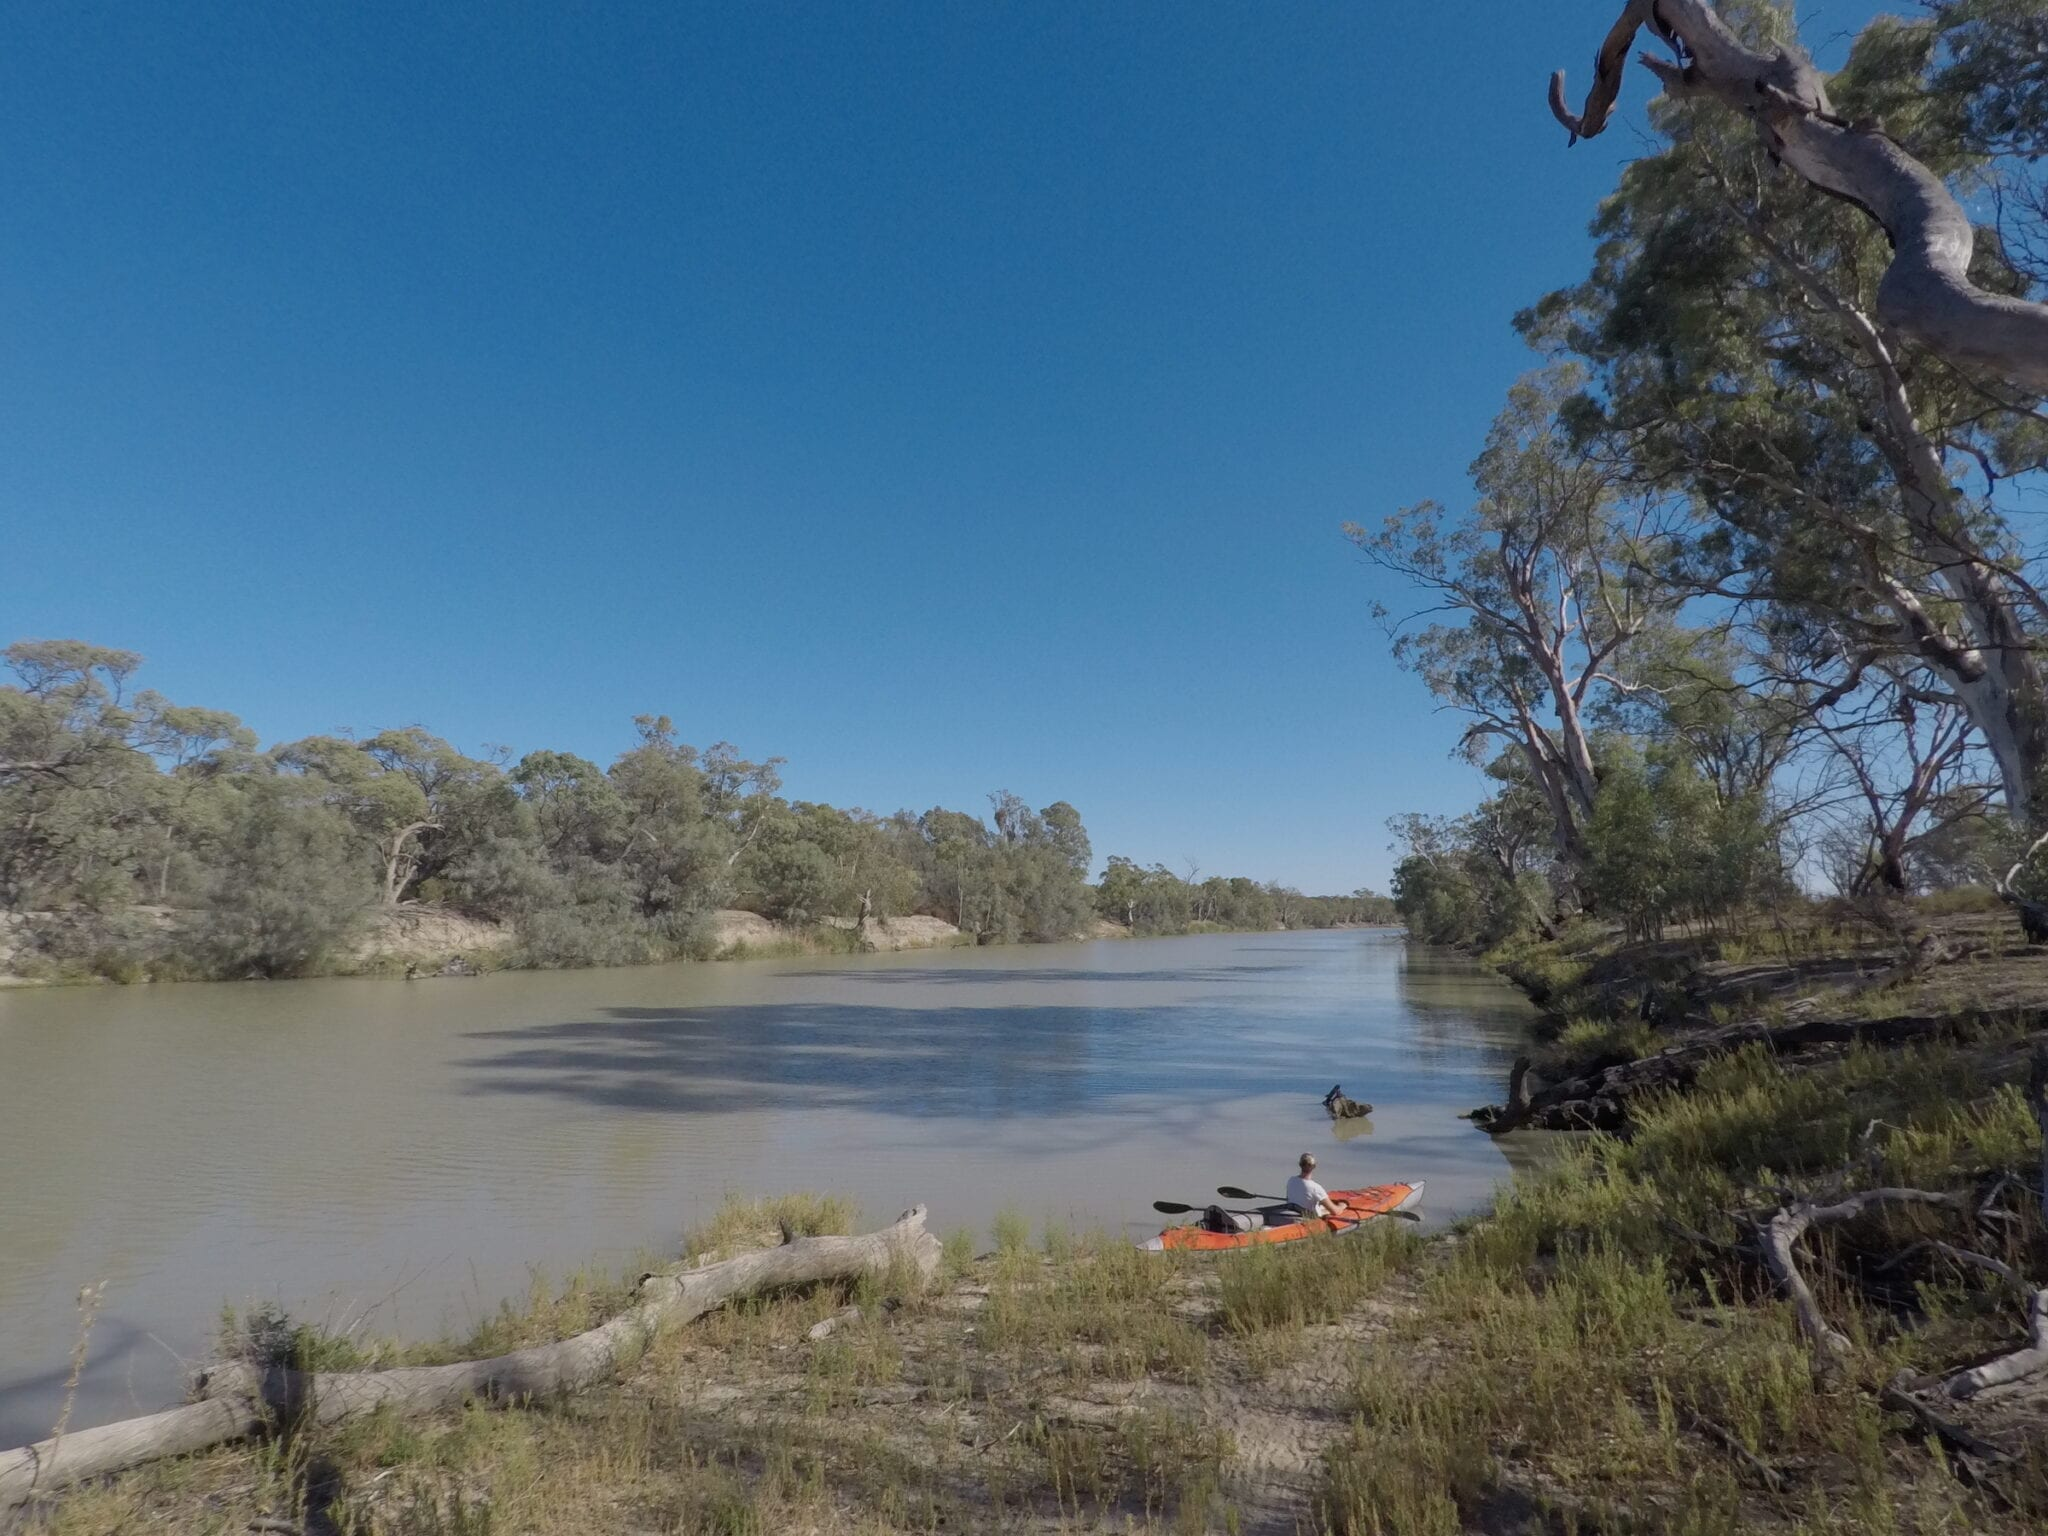 Kayaking The Murray River, looking upstream.